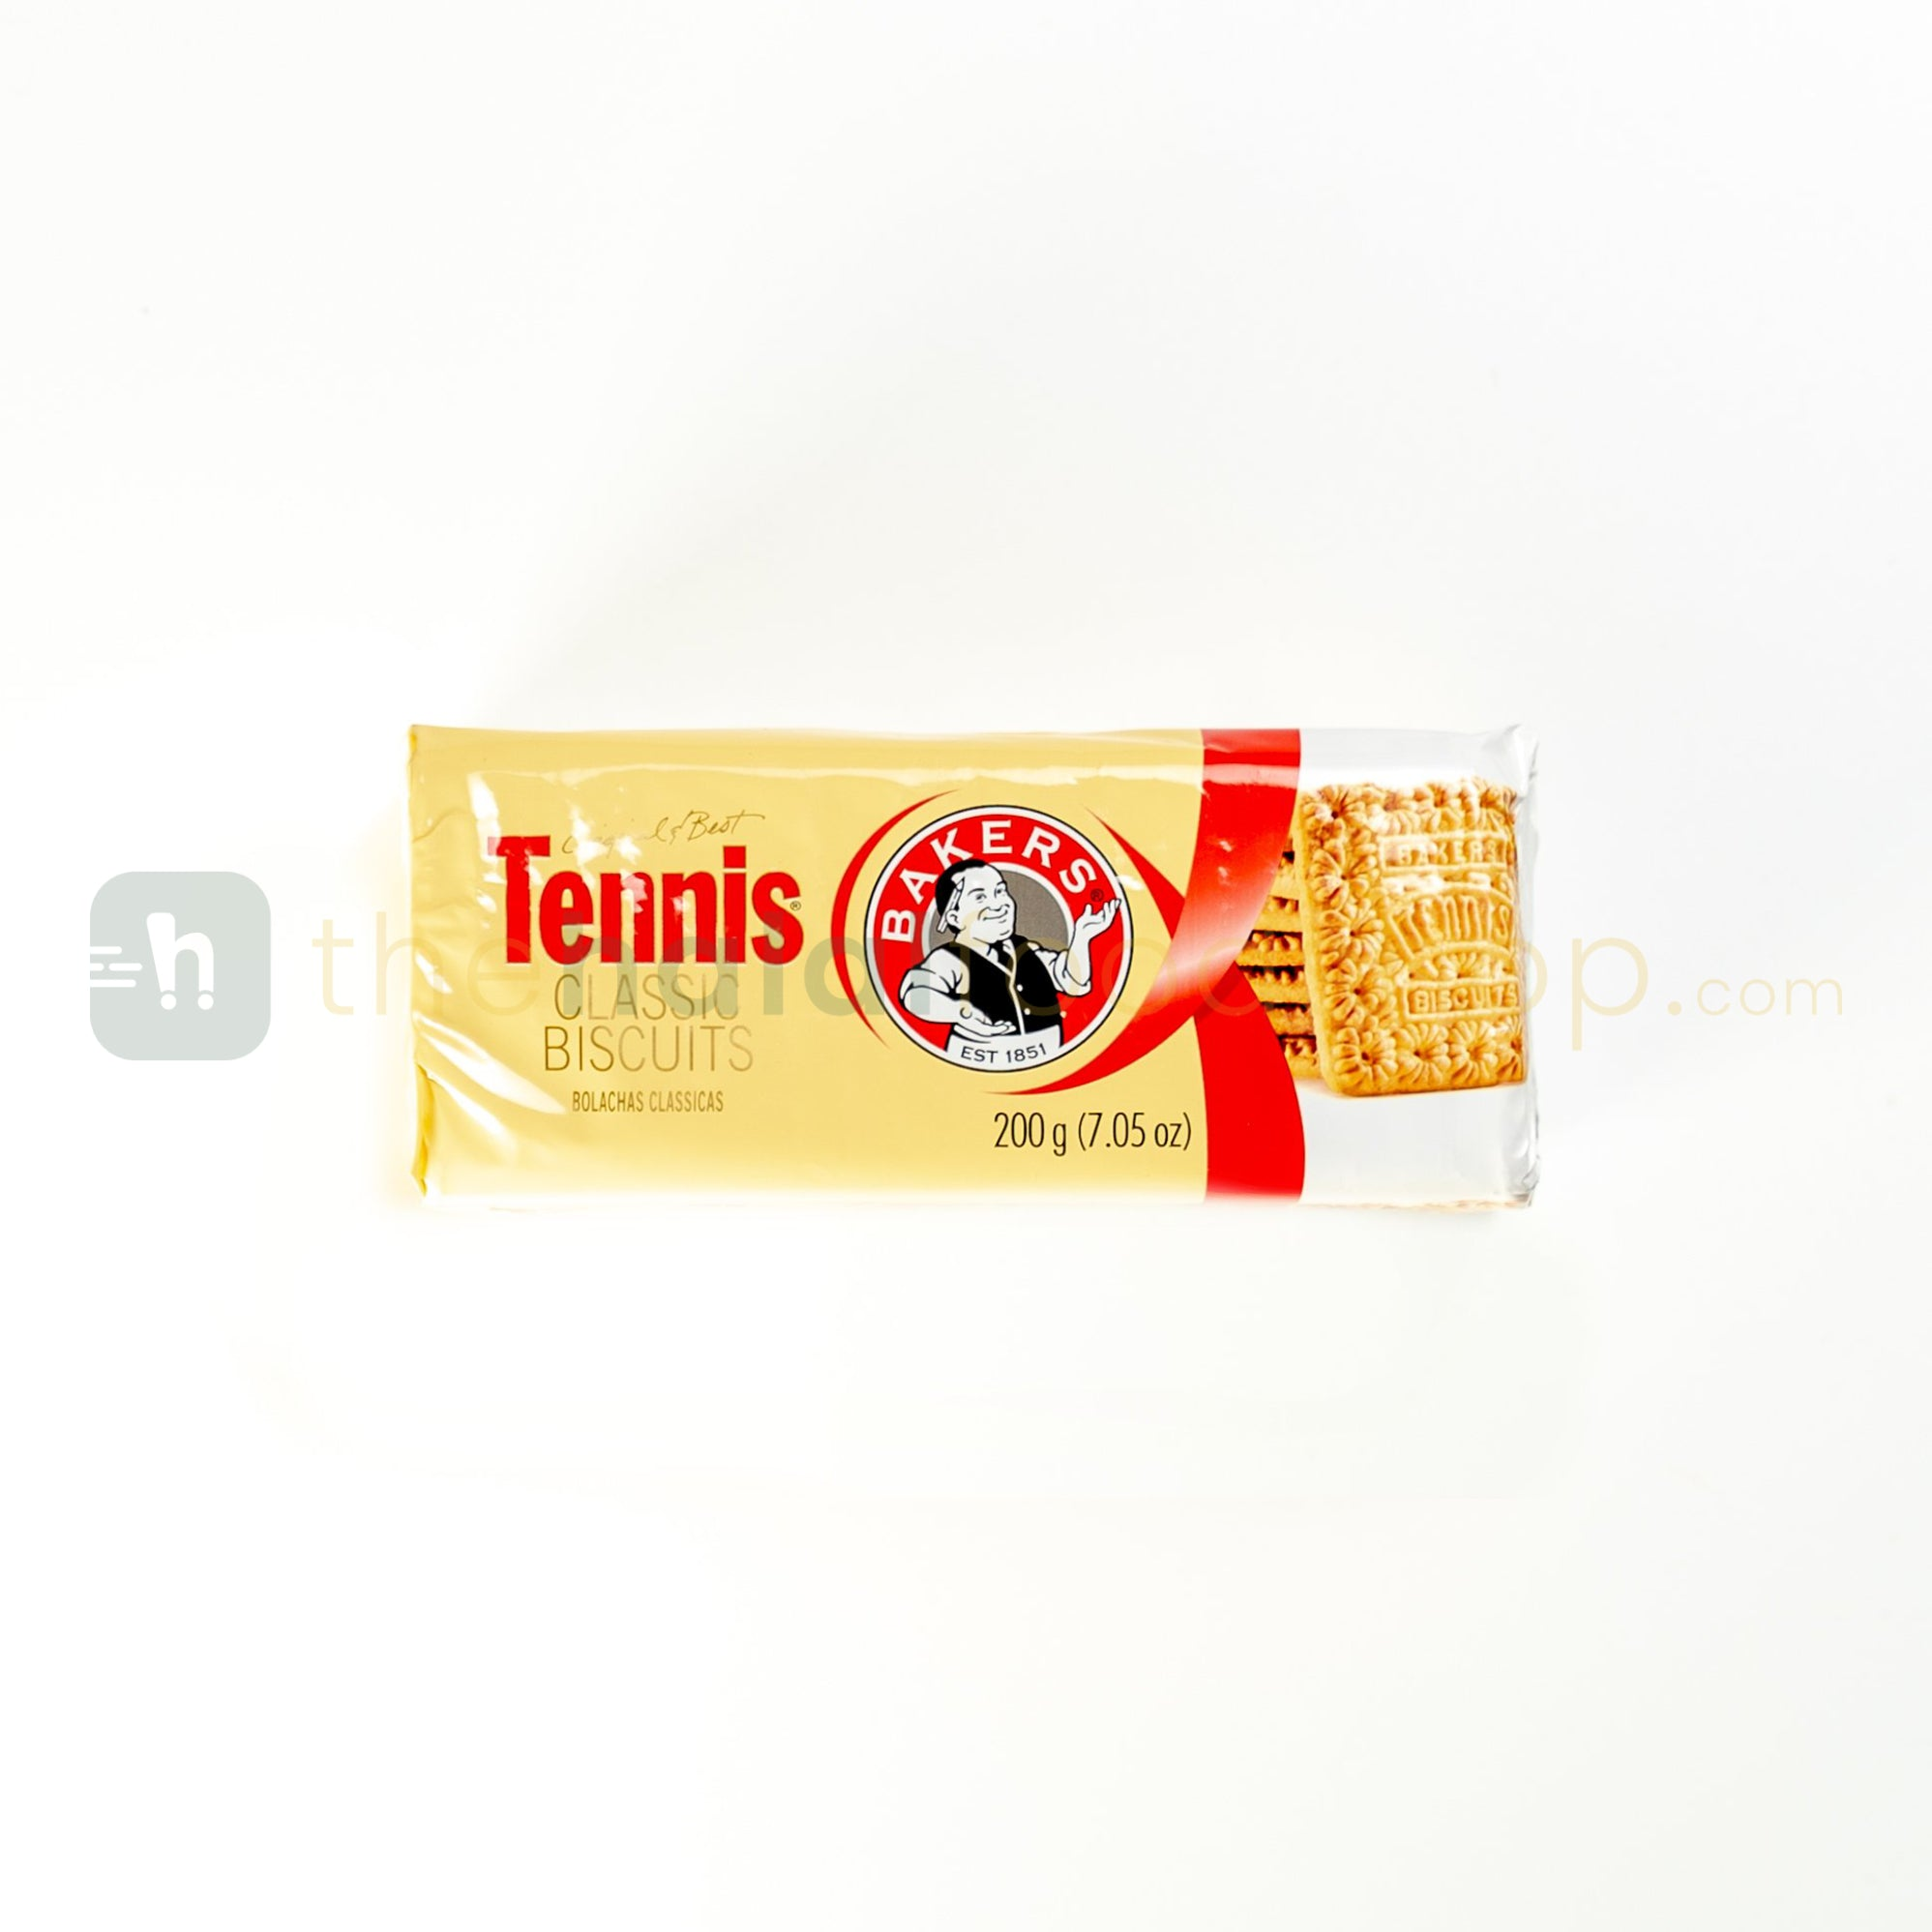 Bakers Original Tennis Classic Biscuits (200g)